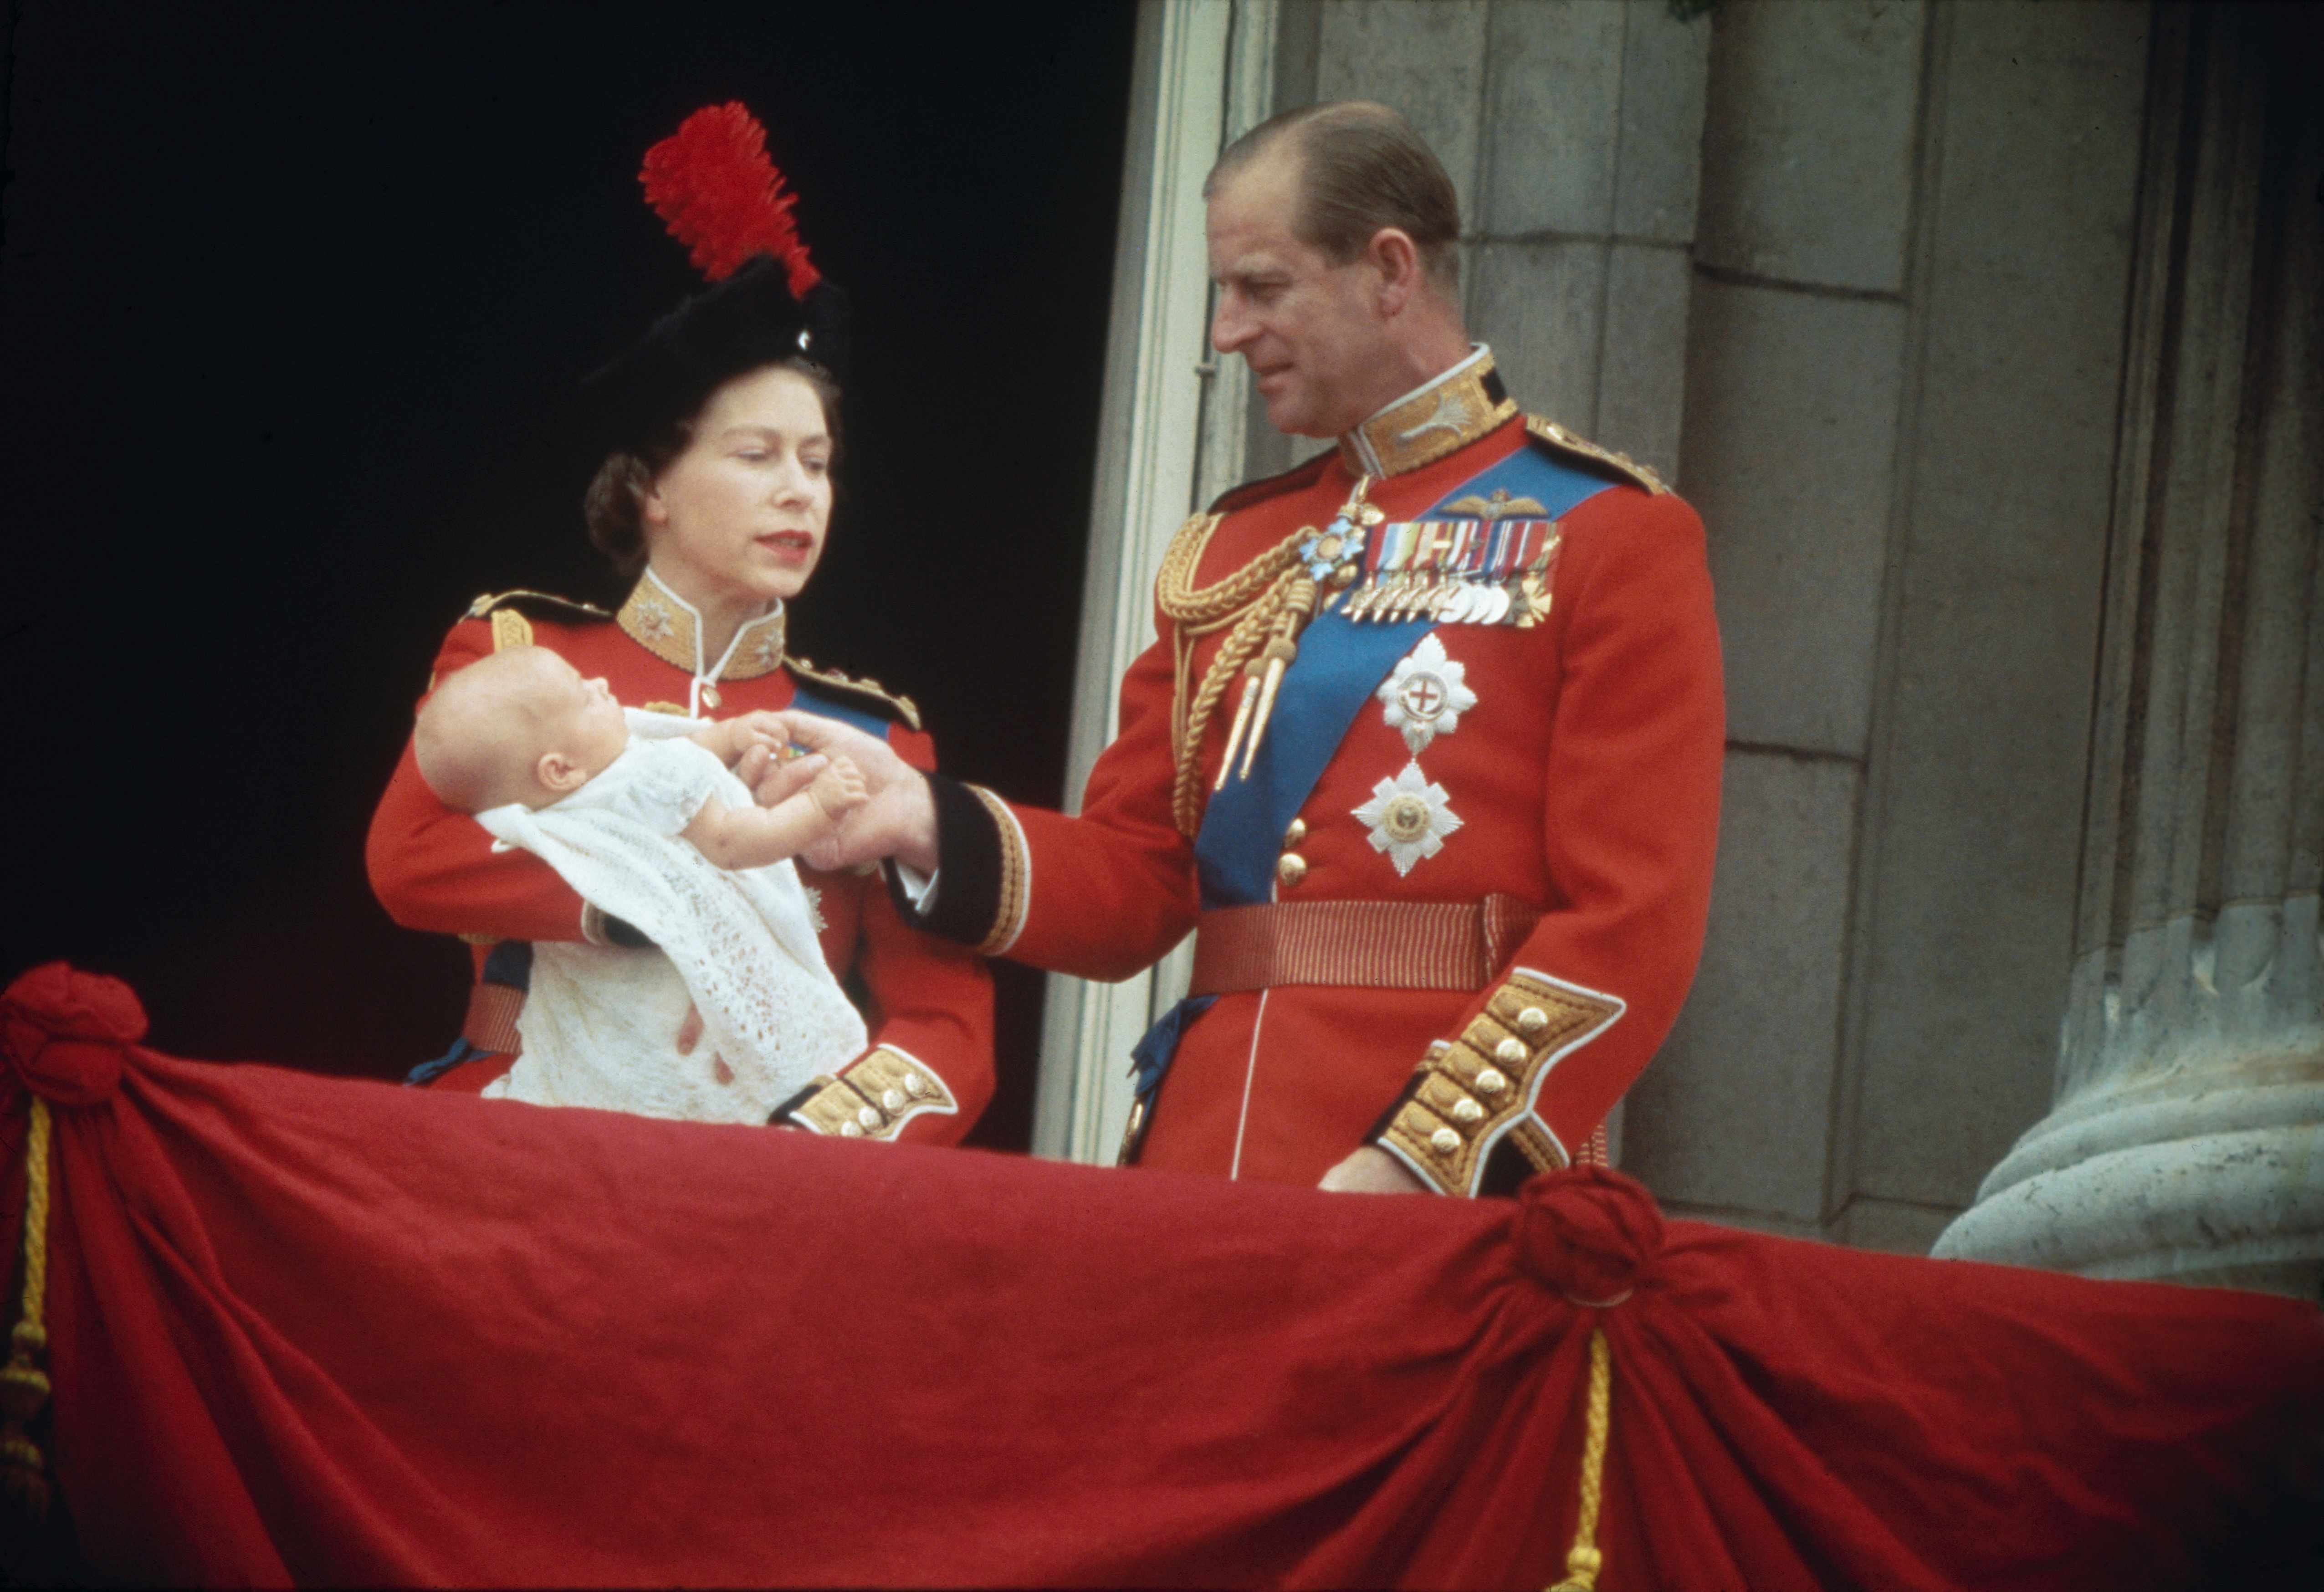 Elizabeth II and Prince Philip with their third son, Prince Edward, on the balcony at Buckingham Palace. (Photo by Fox Photos/Hulton Archive/Getty Images)